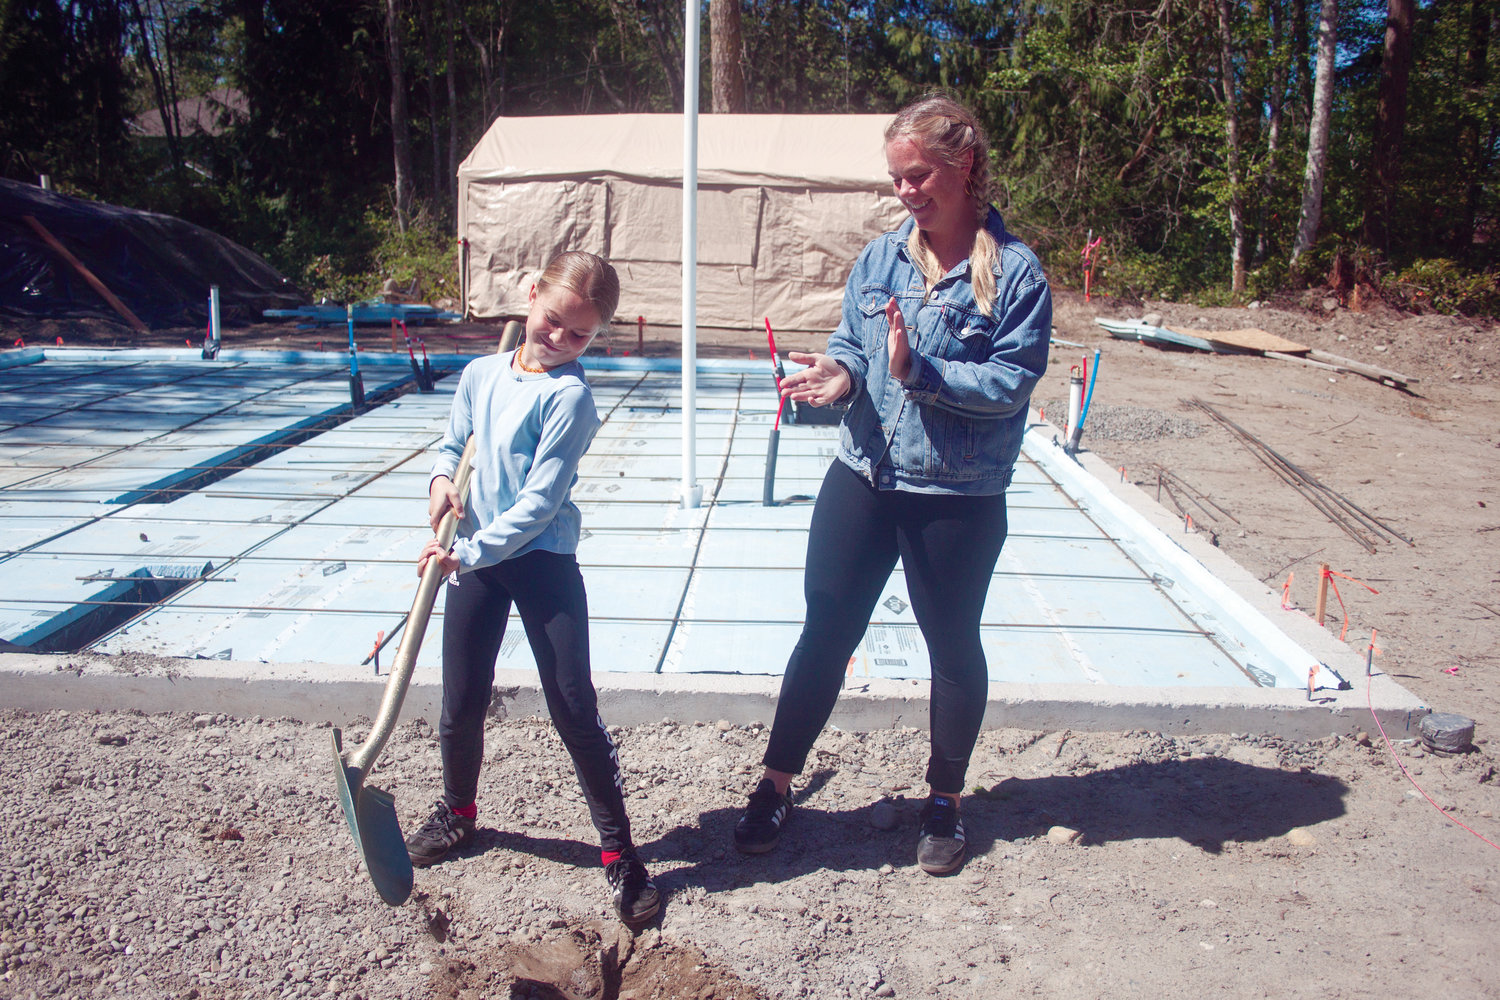 Olivia Jonland, 9, is cheered on by her mother, Ingrid, as she turns a ceremonial shovel of dirt at the foundation of their new home April 27.